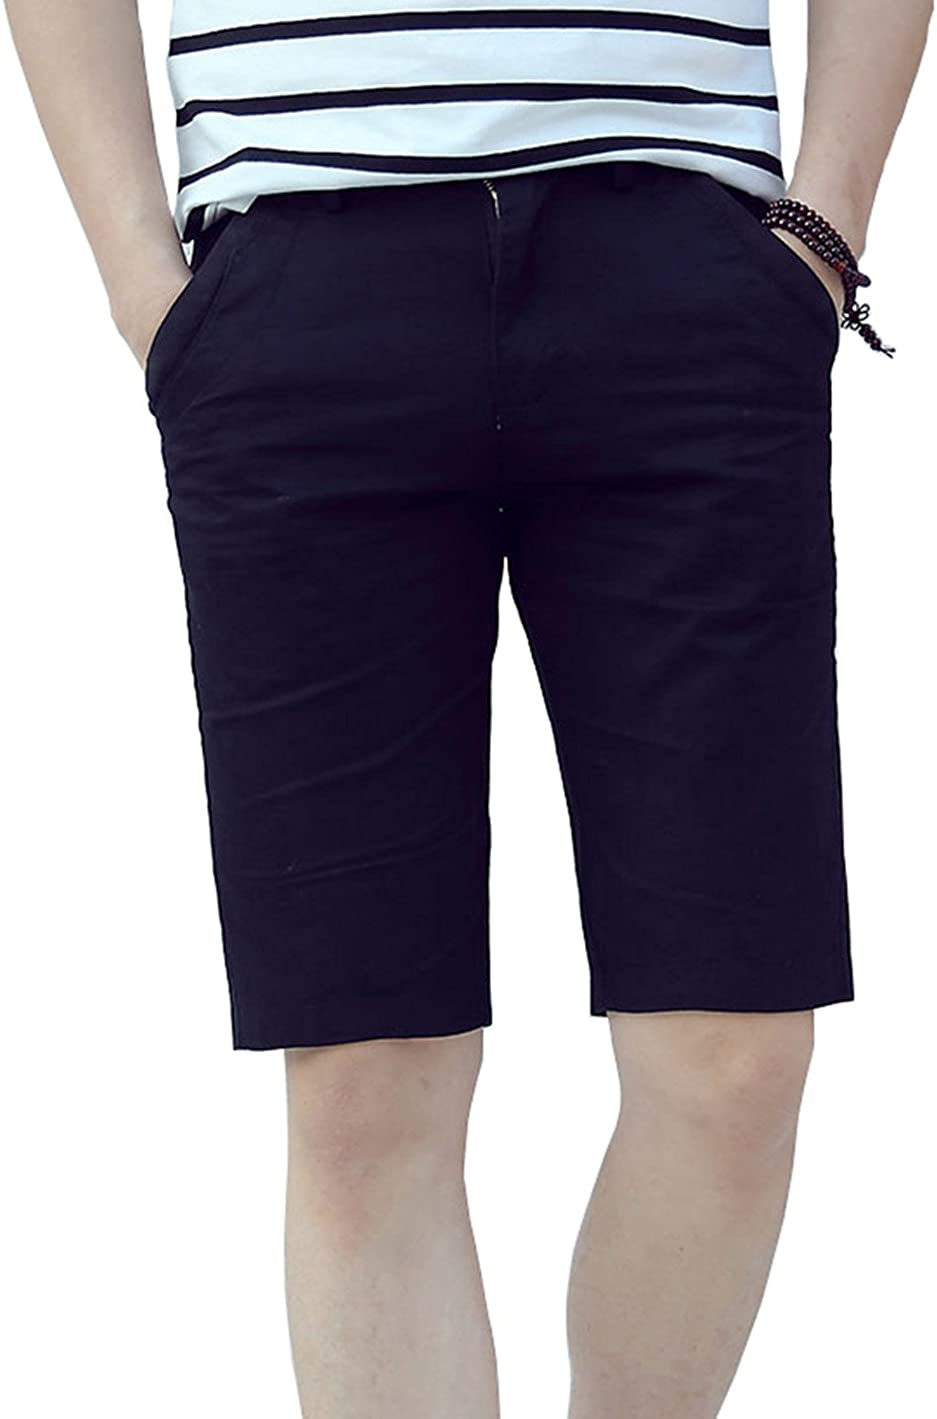 XTAPAN NEW Men's Daily bargain sale Slim Fit Flat Front Sho Shorts Chino Casual Stretch